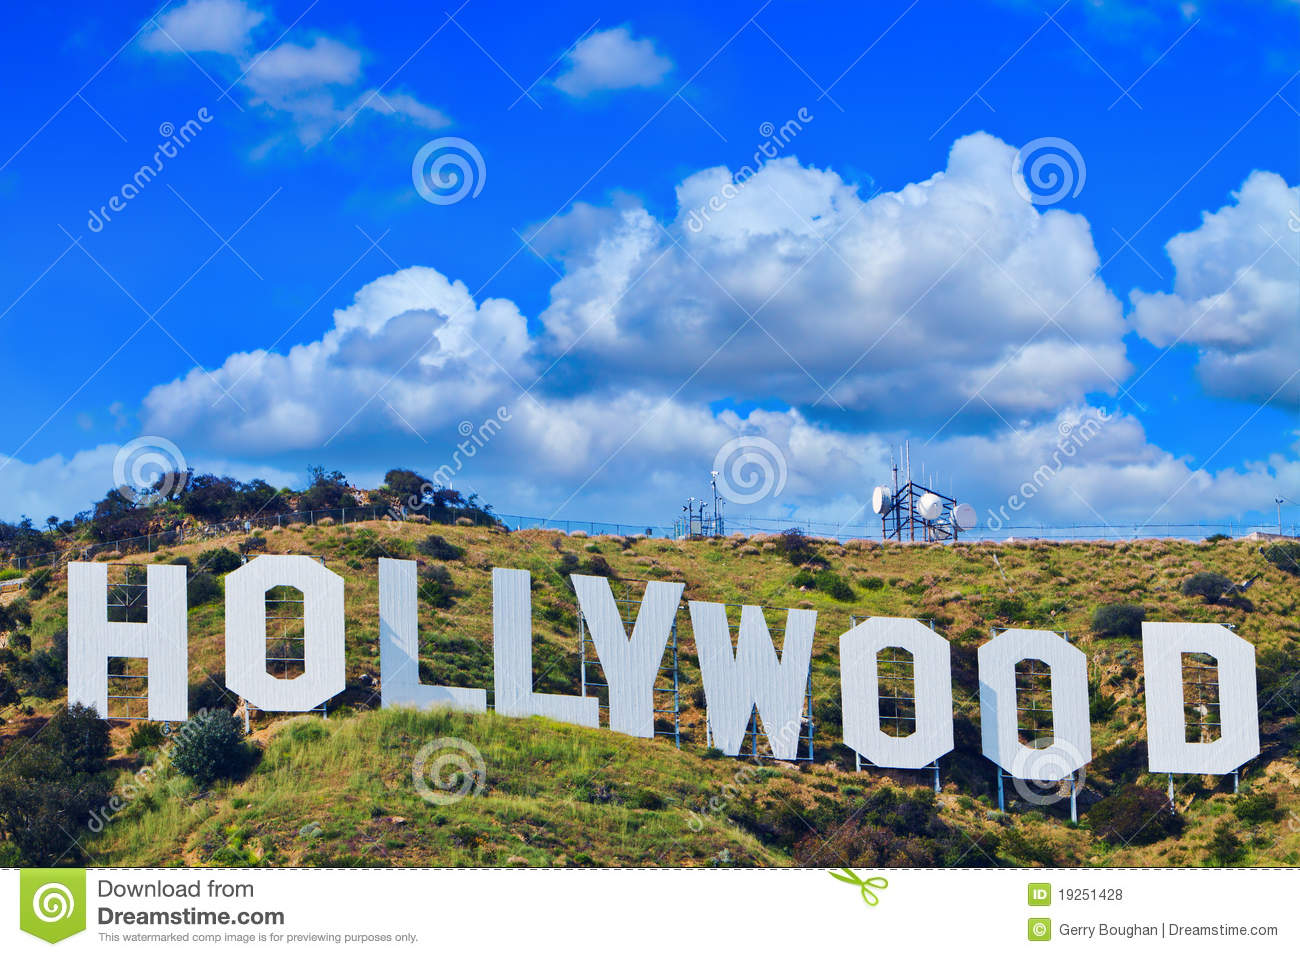 hollywood karte